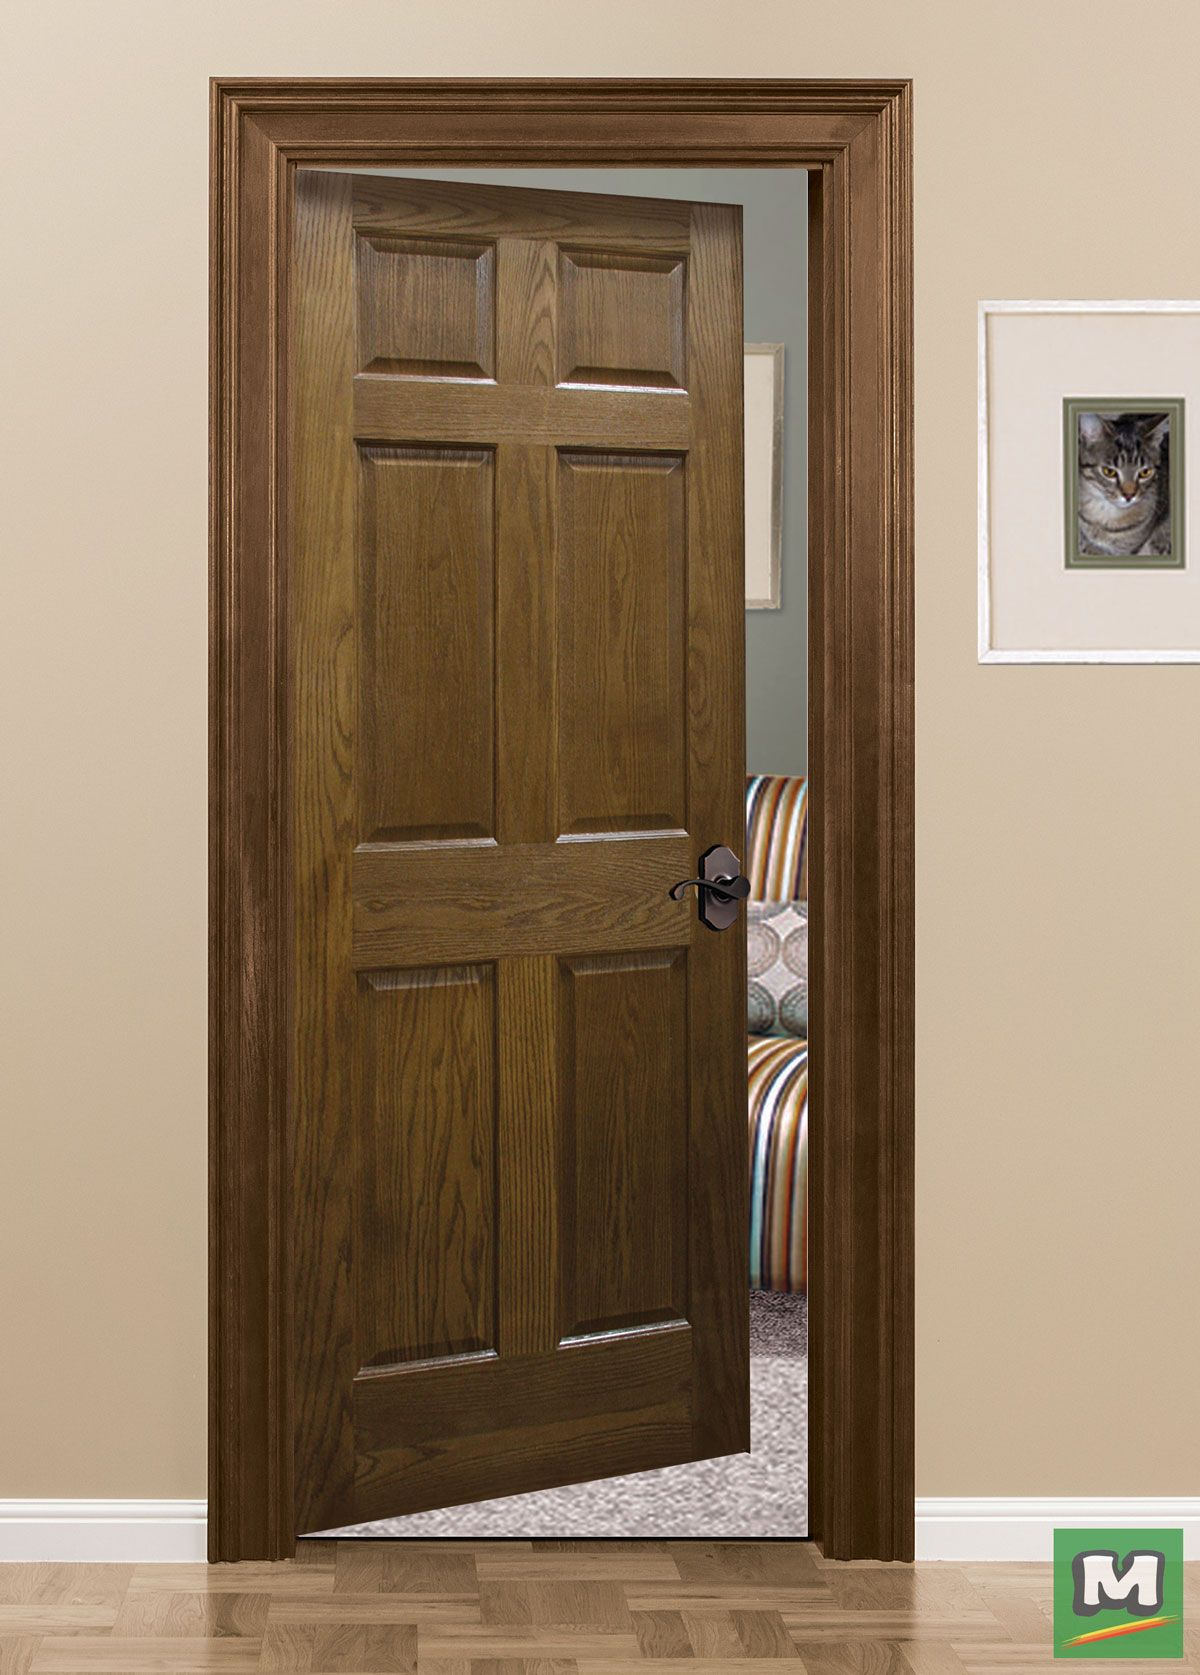 The Oak Six Panel Door Style From Mastercraft Displays A Prestigious Charm Evident In Its Carefully Cr Doors Interior Hallway Decorating Interior Design Paint